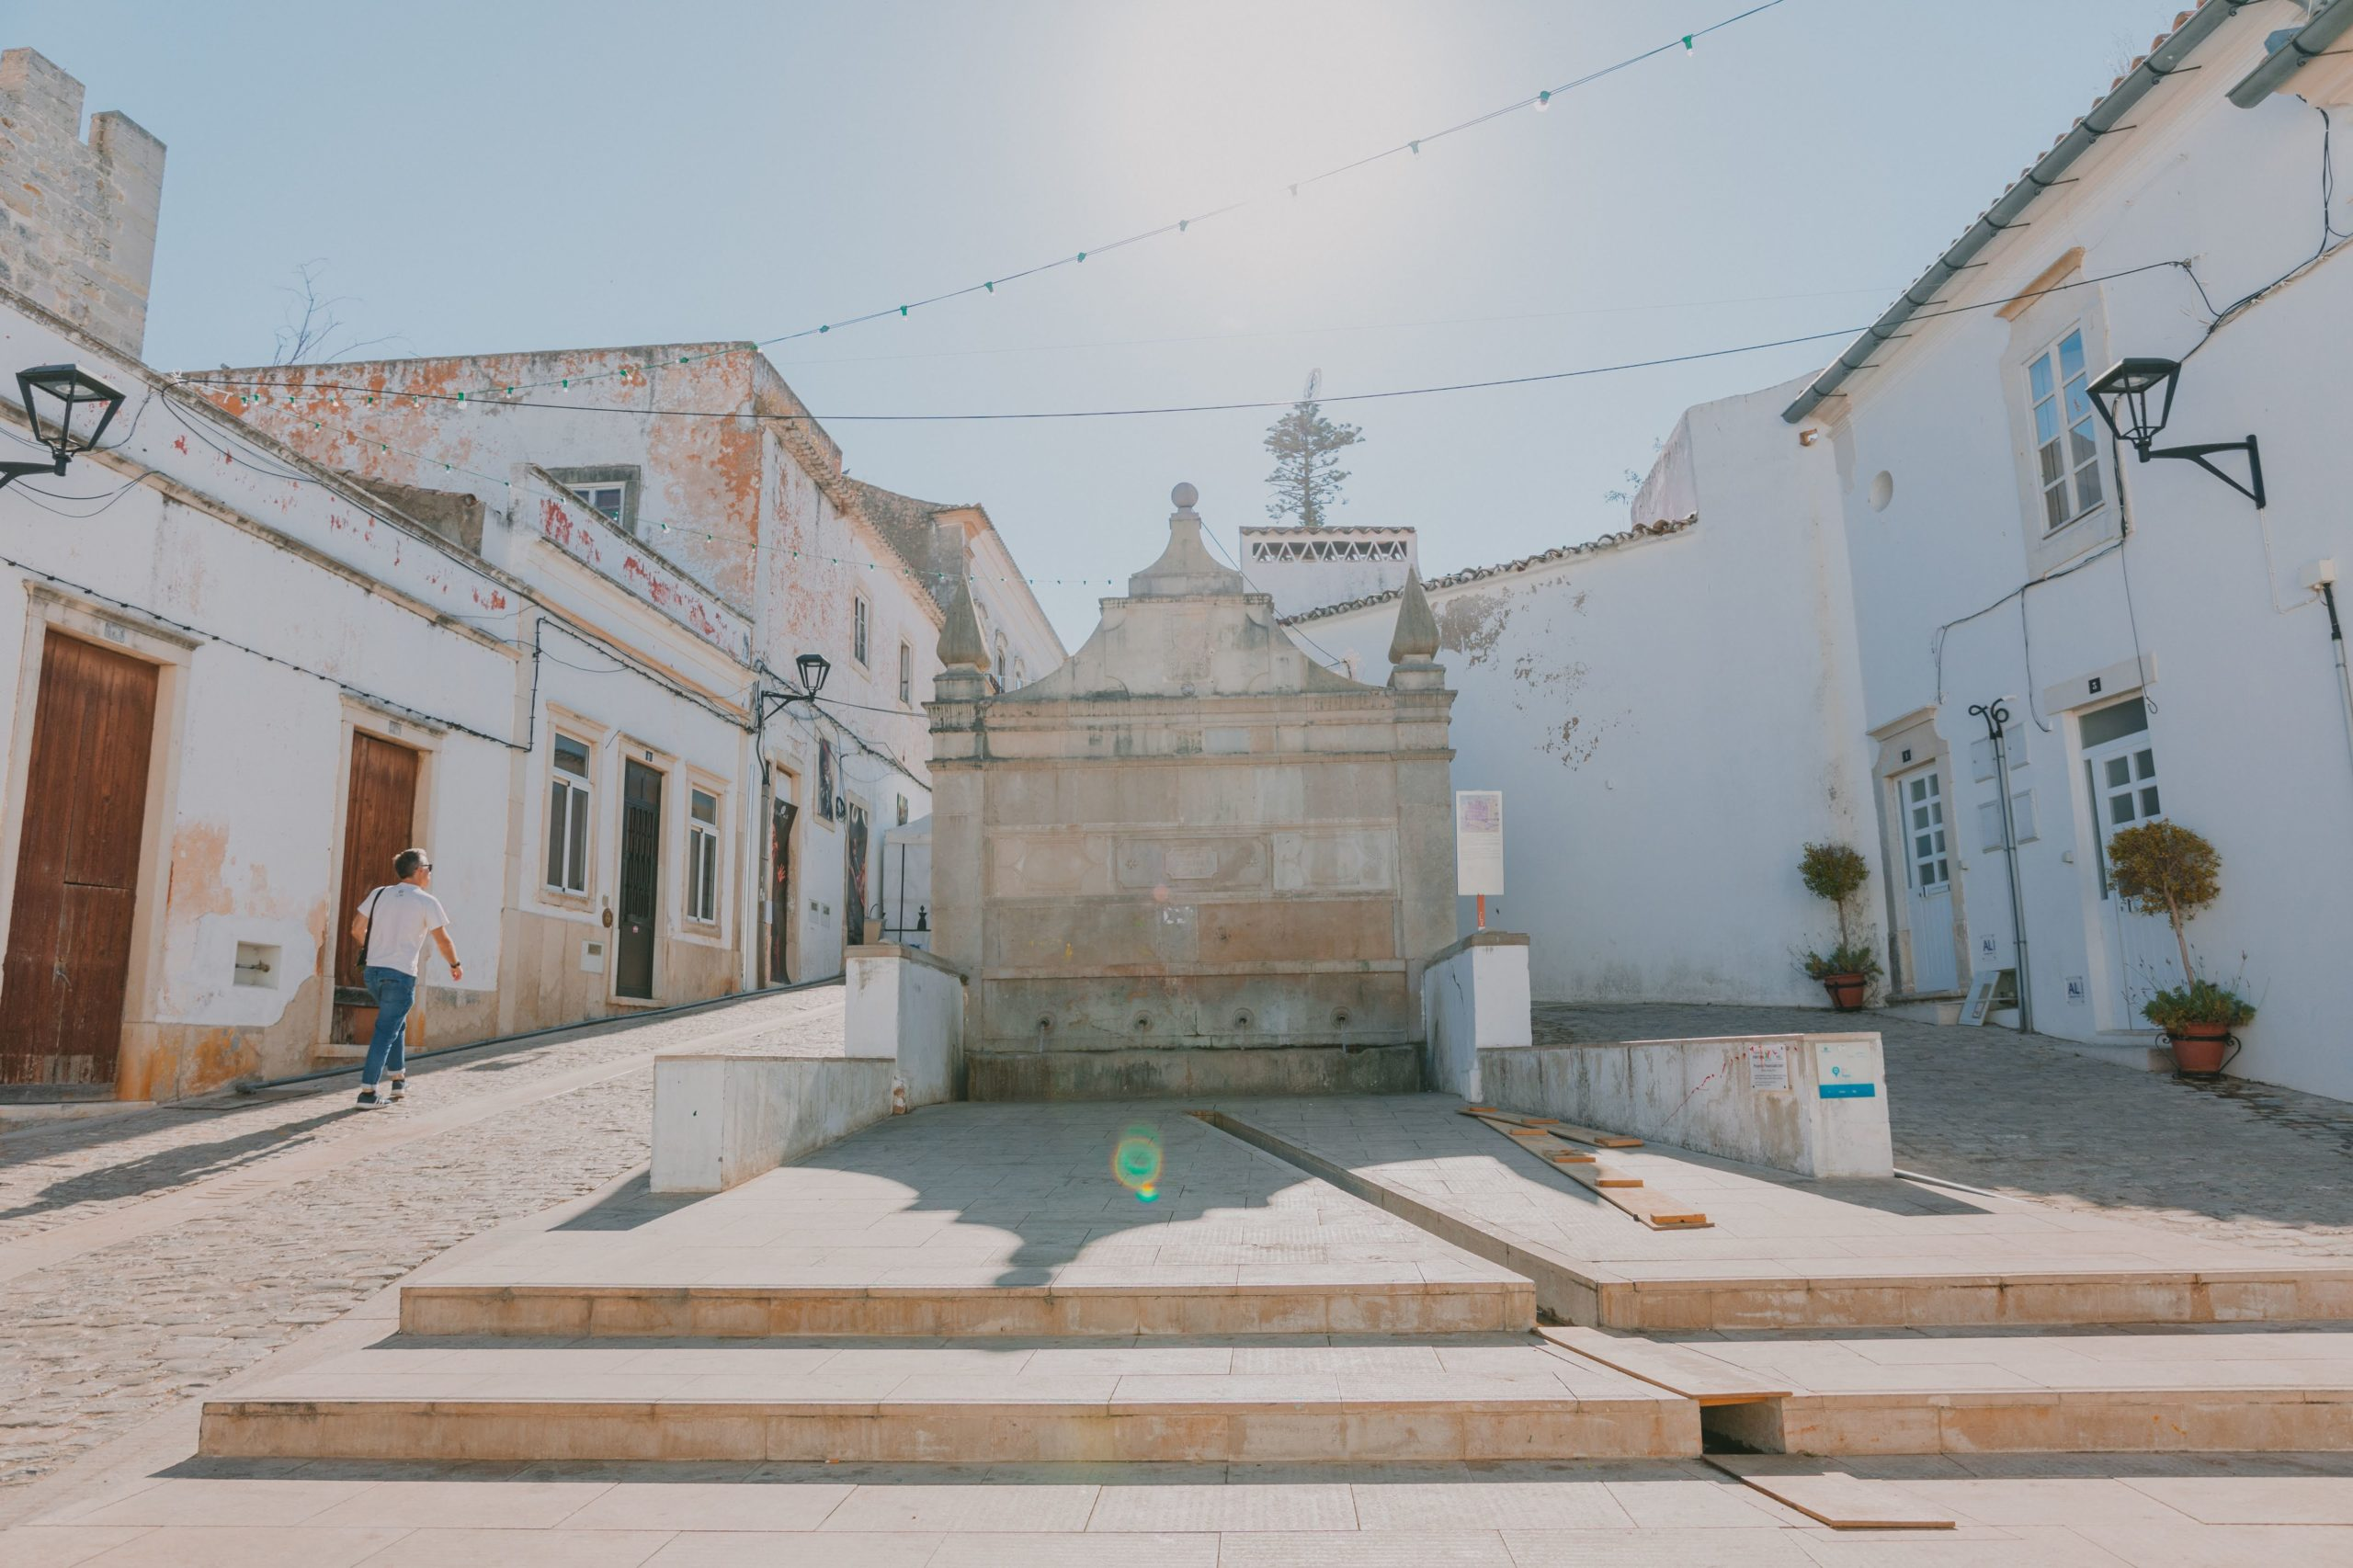 Take a walk around the narrow streets in Algarve